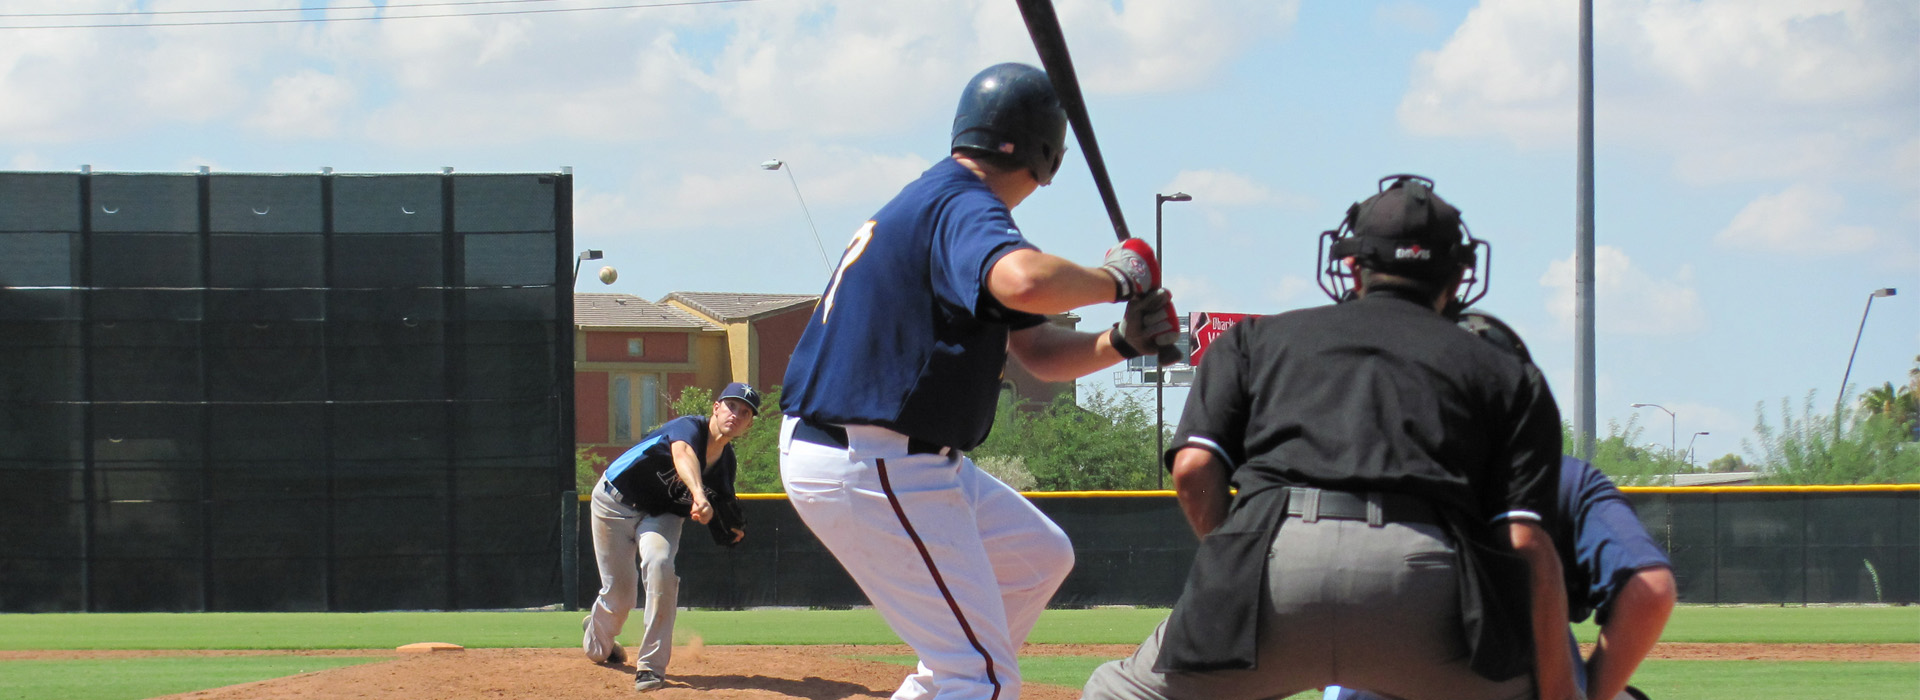 Arizona Men's Senior Baseball League - AZMSBL - Homepage8